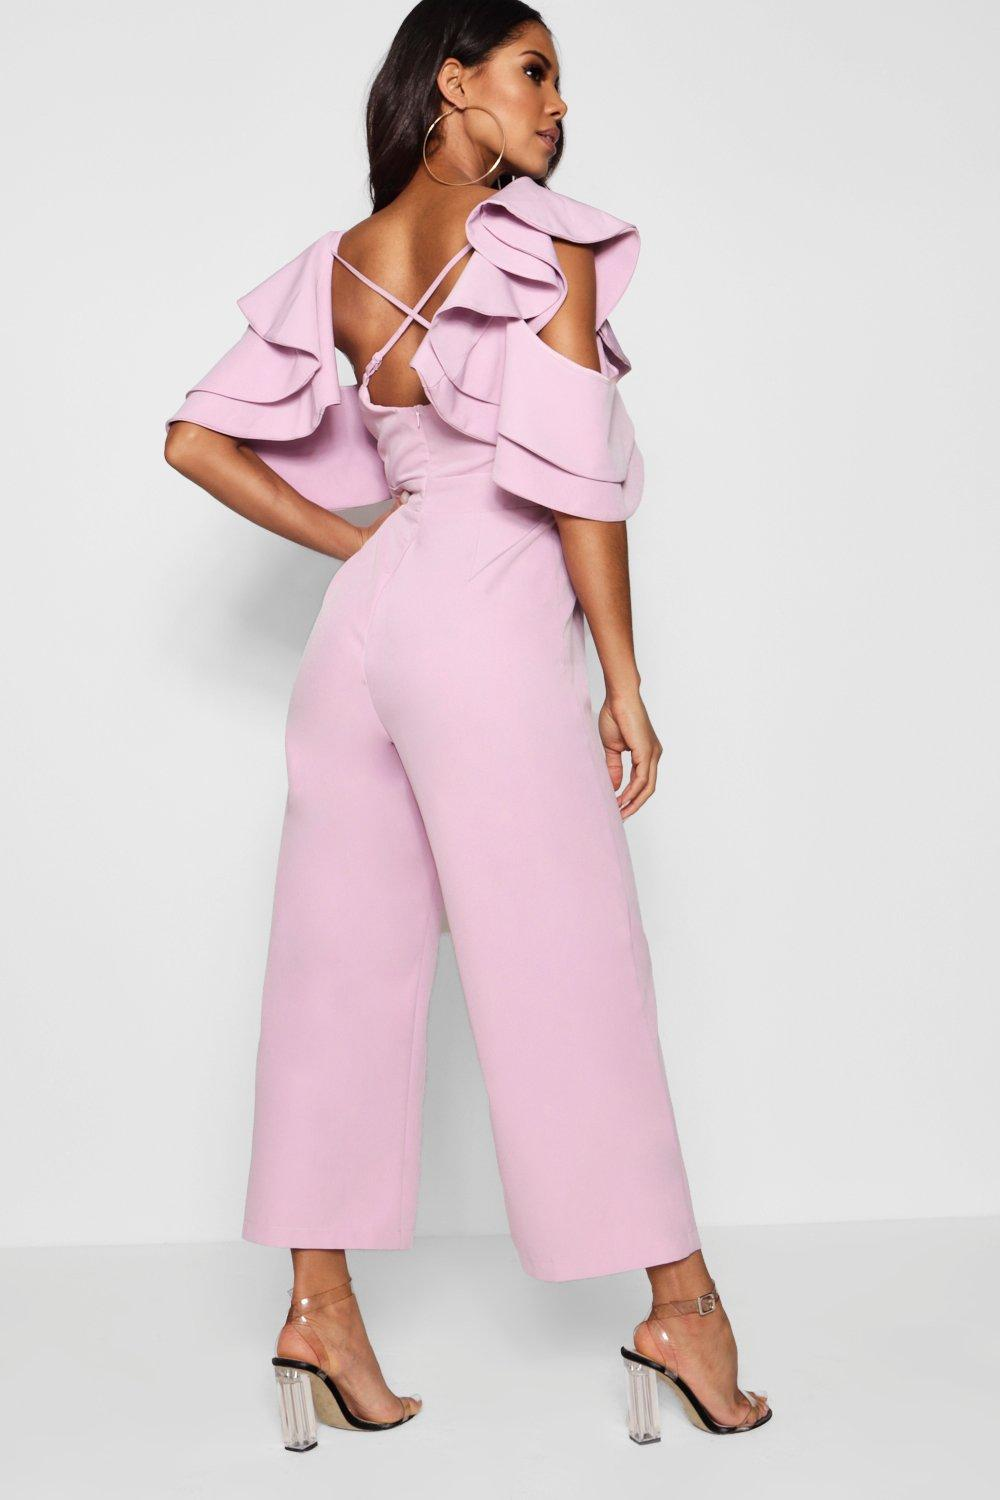 4a0ec765c42 Statement Ruffle Cross Back Jumpsuit. Hover to zoom